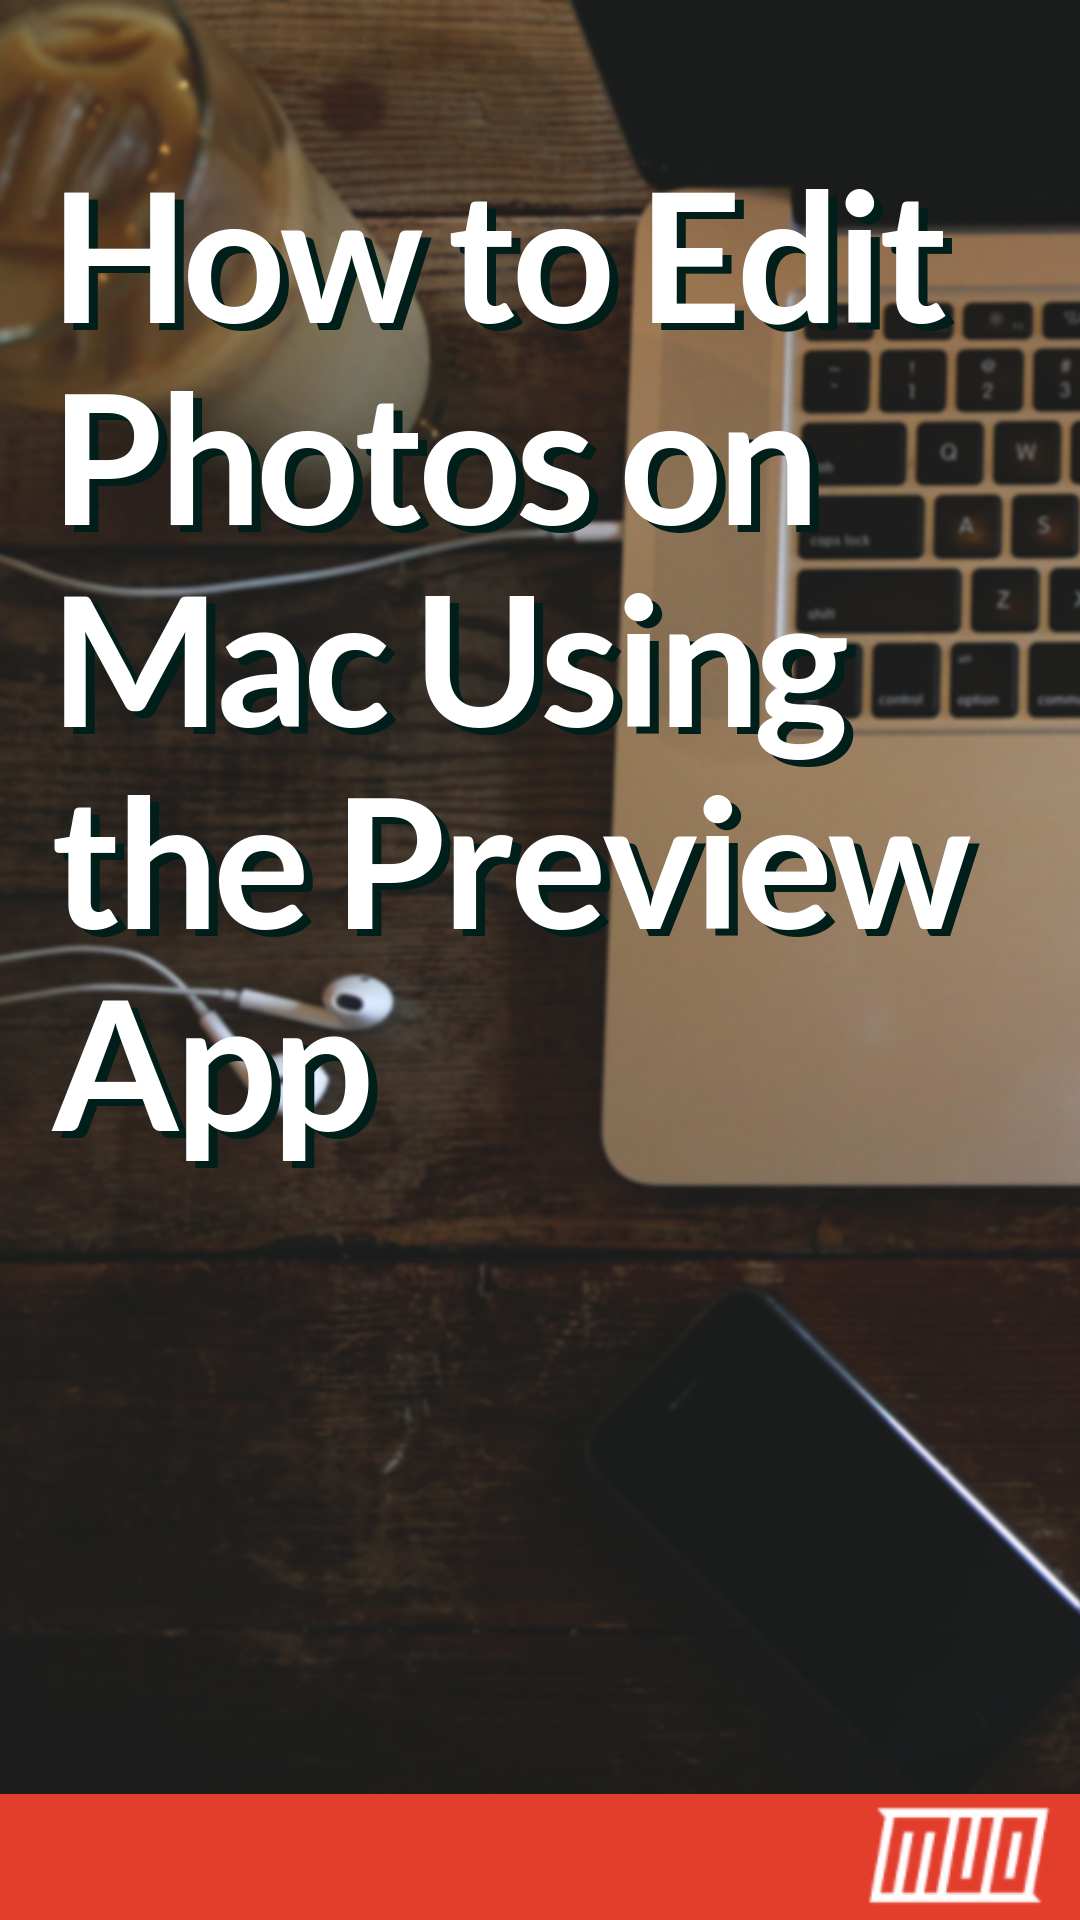 How to Edit Photos on Mac Using the Preview App Apple